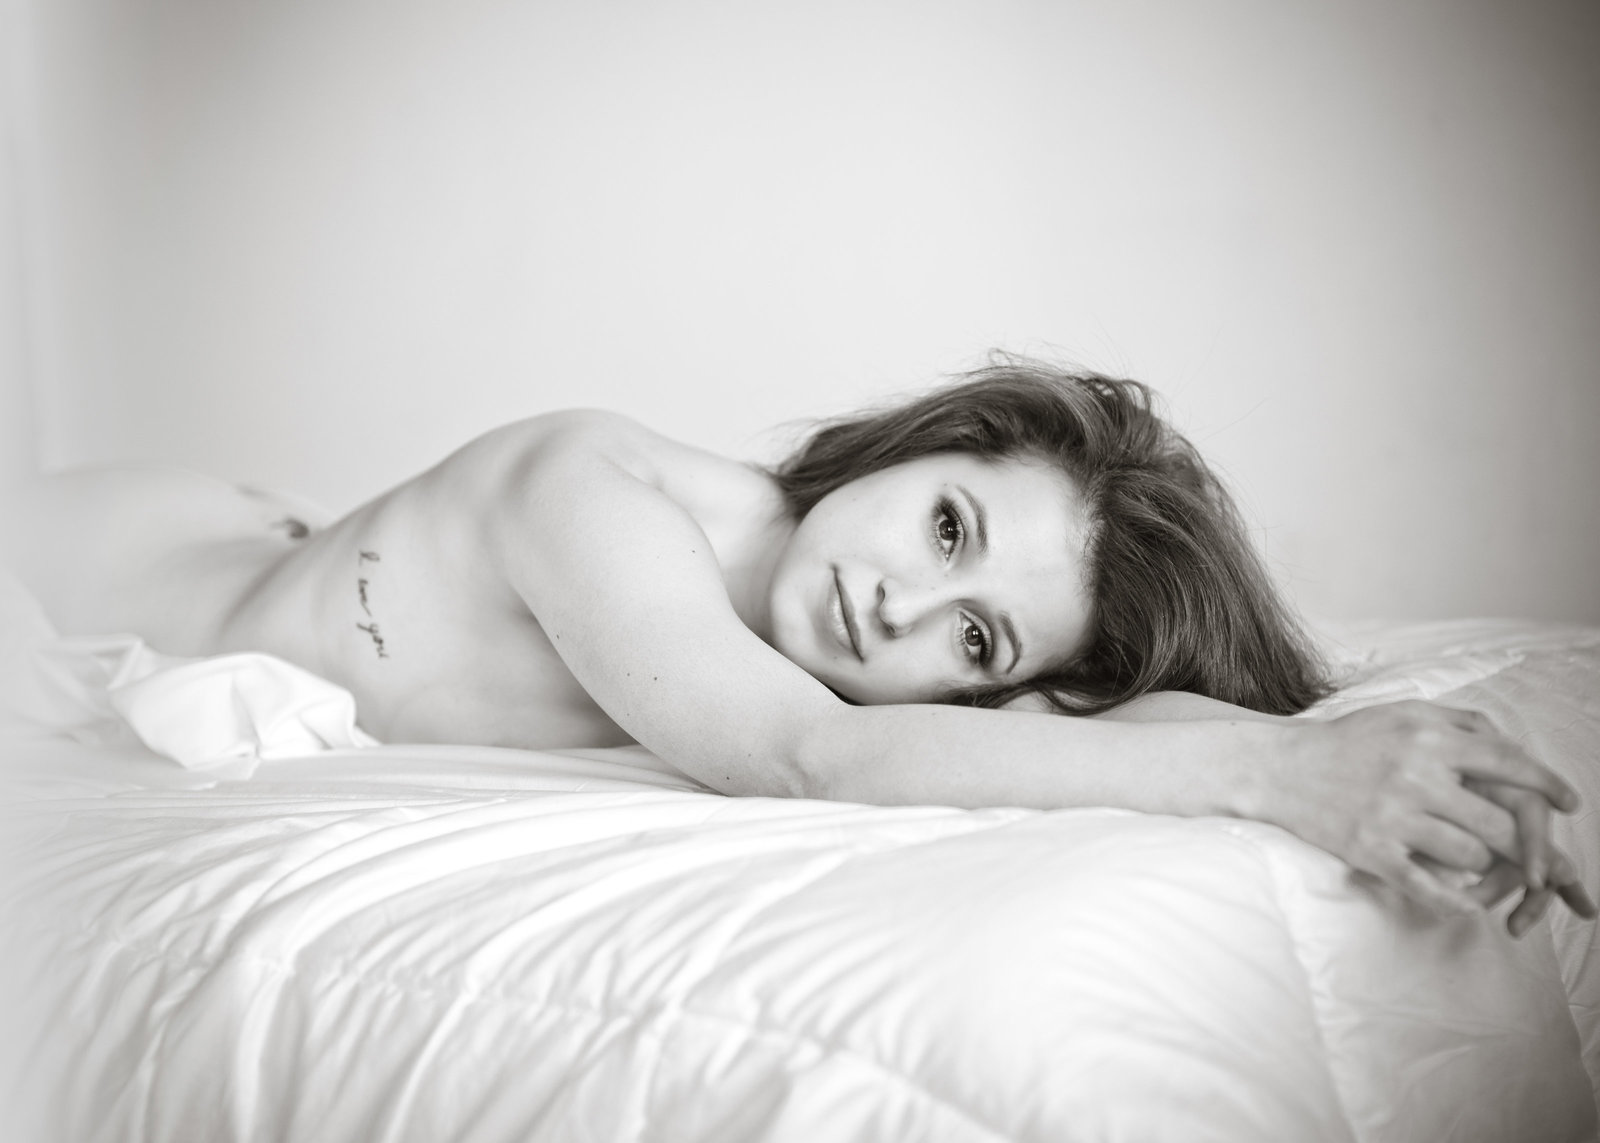 minneapolis-boudoir-photography-154